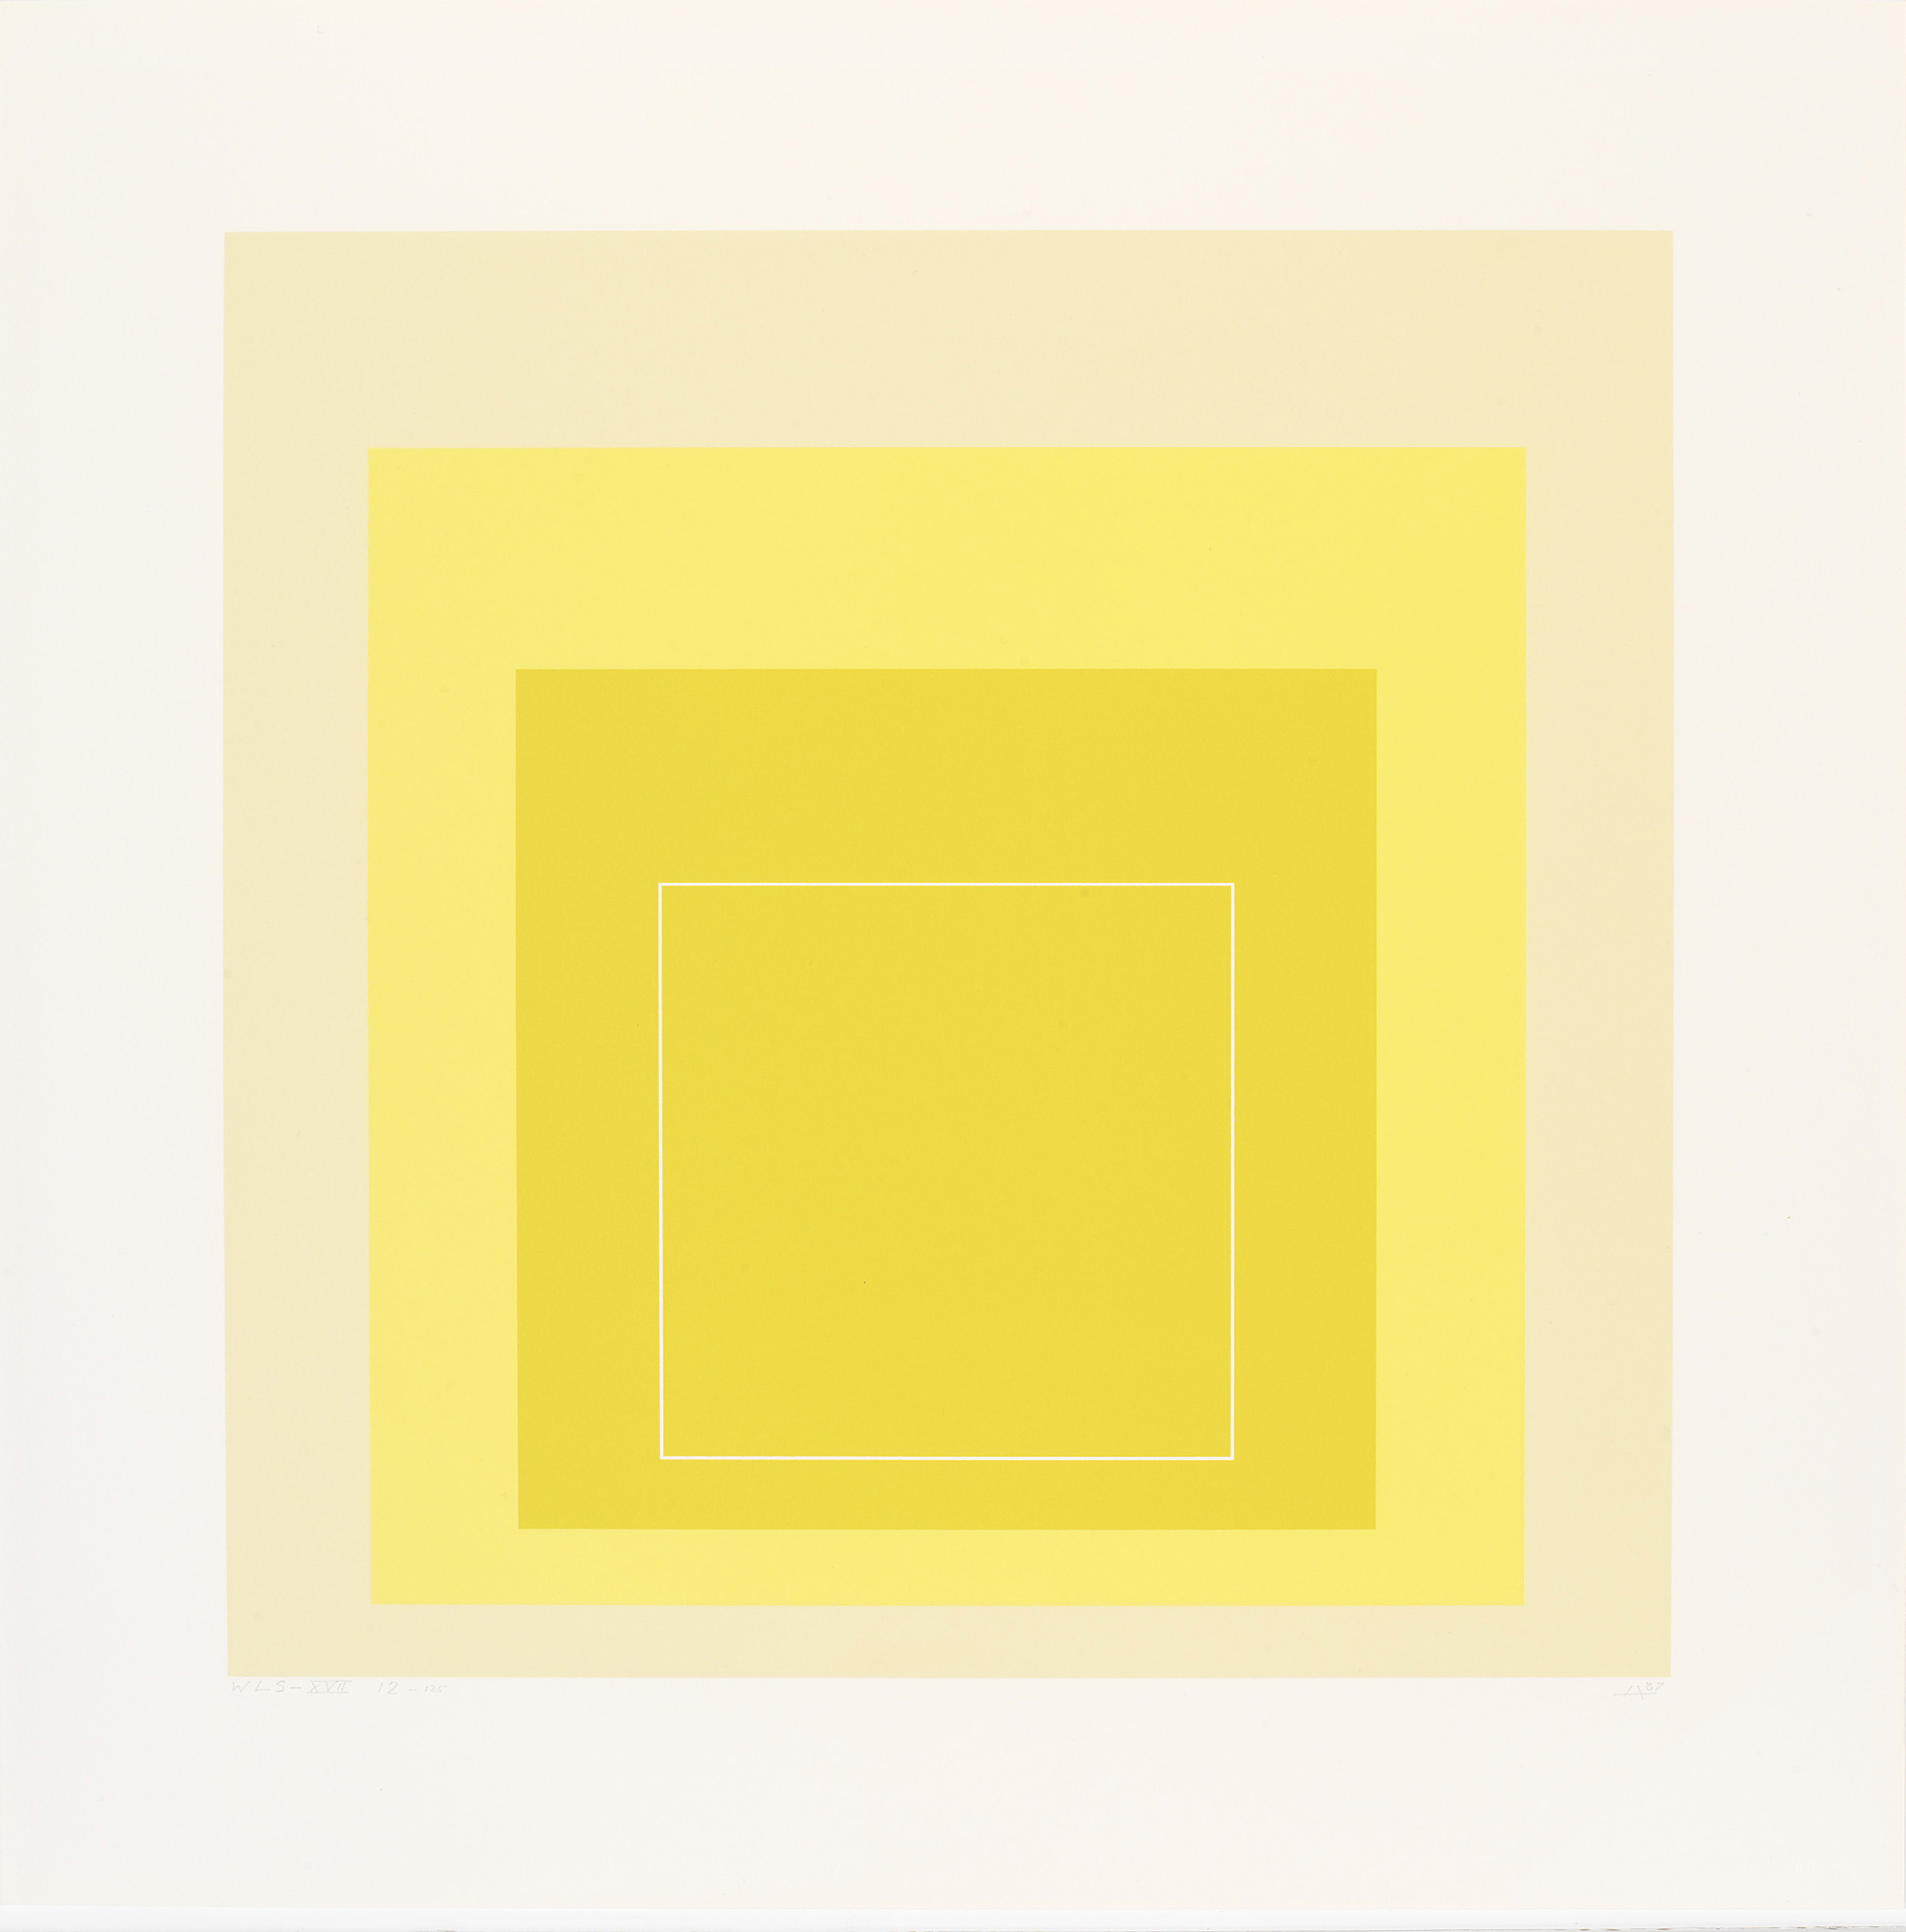 Josef Albers, WLS [White Line Square] XVII, 1967 (available during the silent auction)